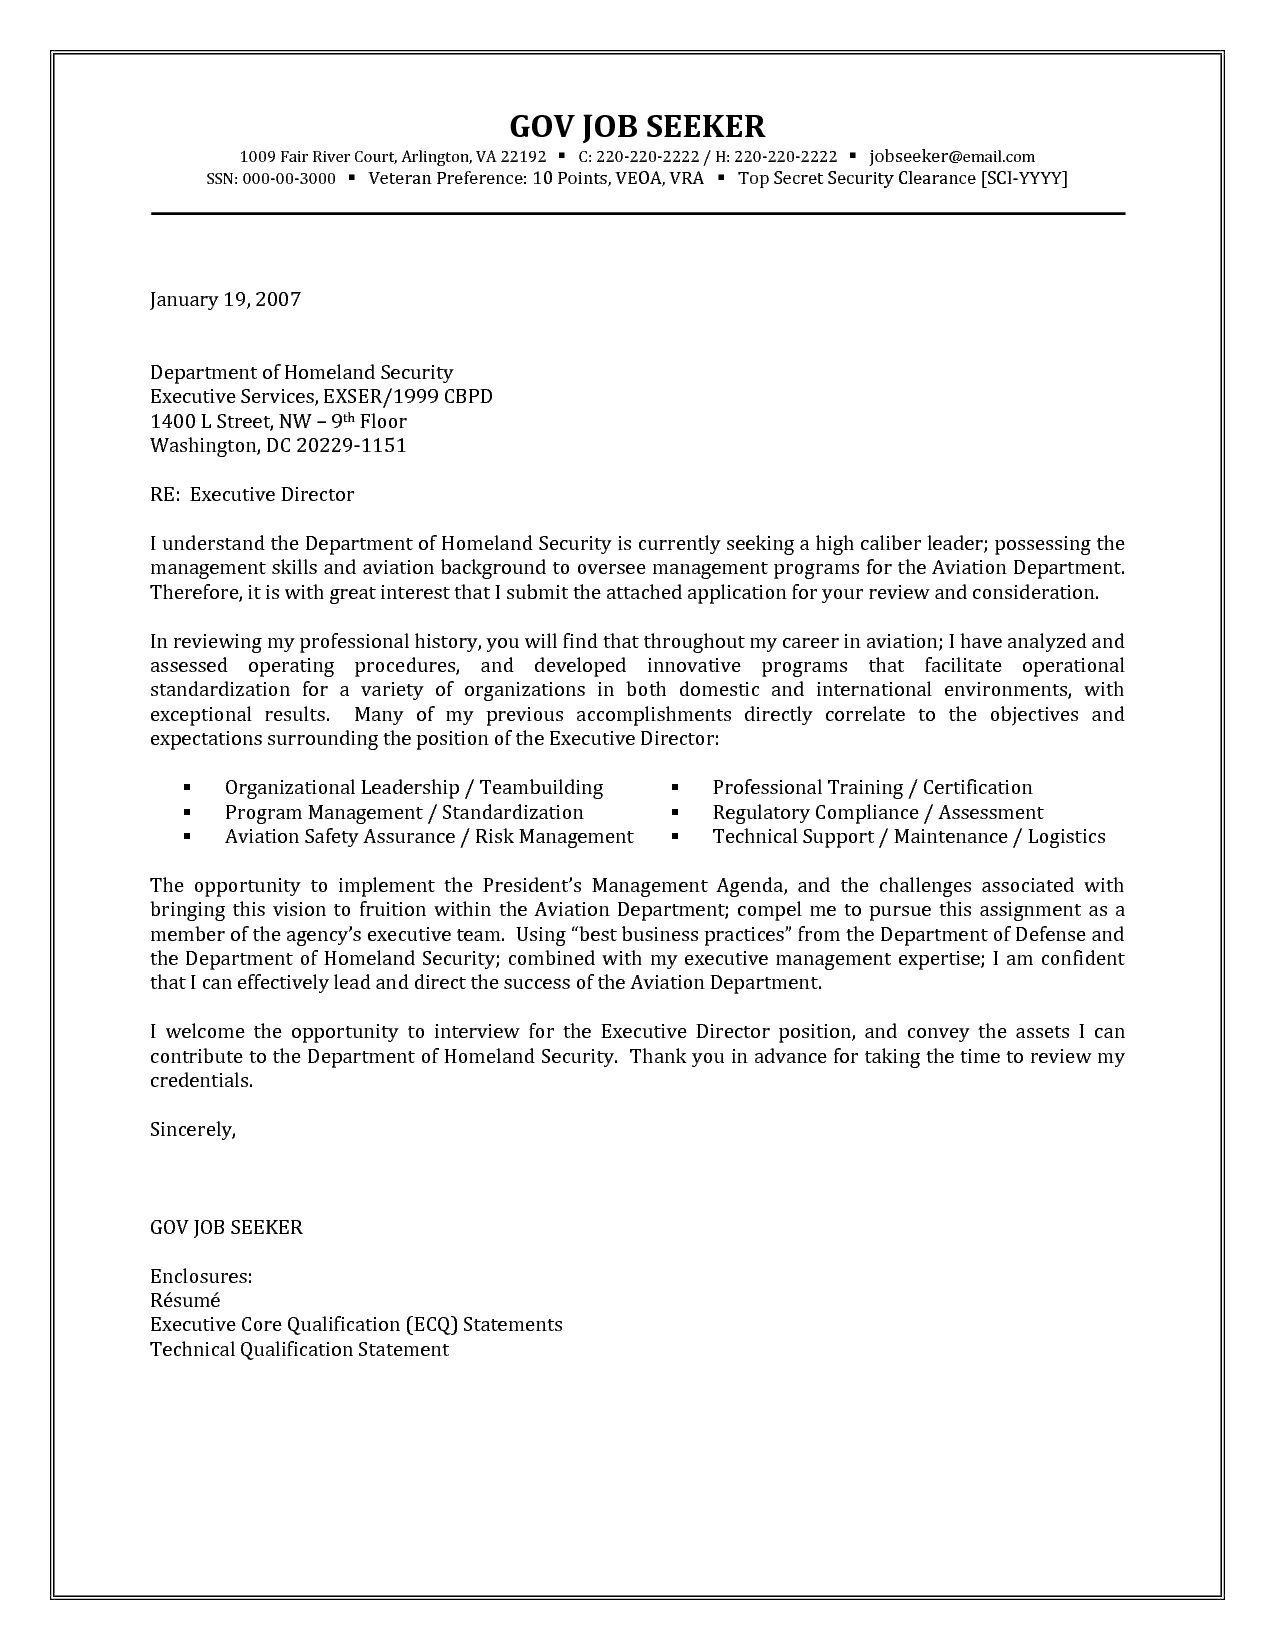 Government Resume Cover Letter Examples httpjobresumesamplecom